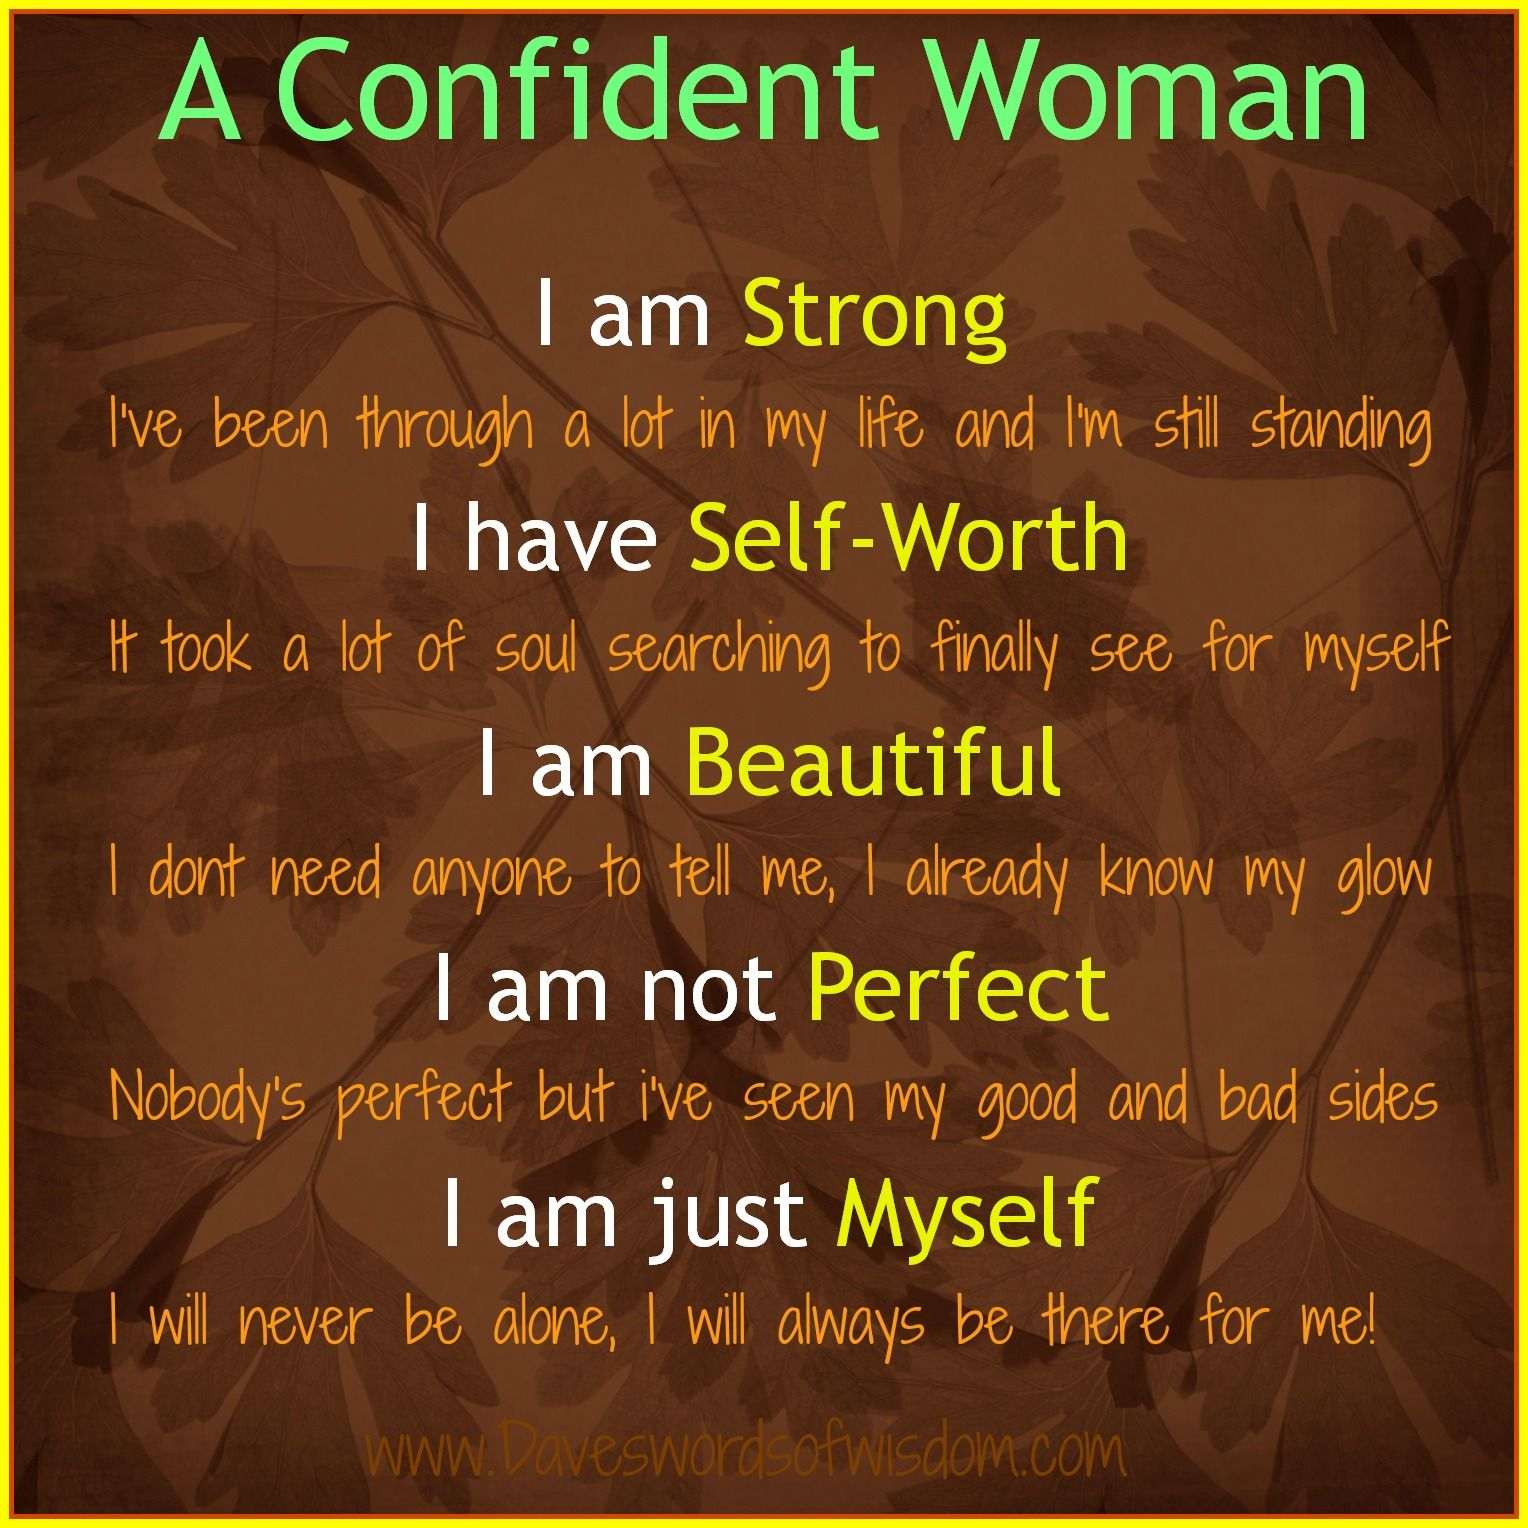 Confident Women Quotes Daveswordsofwisdom A Confident Woman  Eat & Live Well